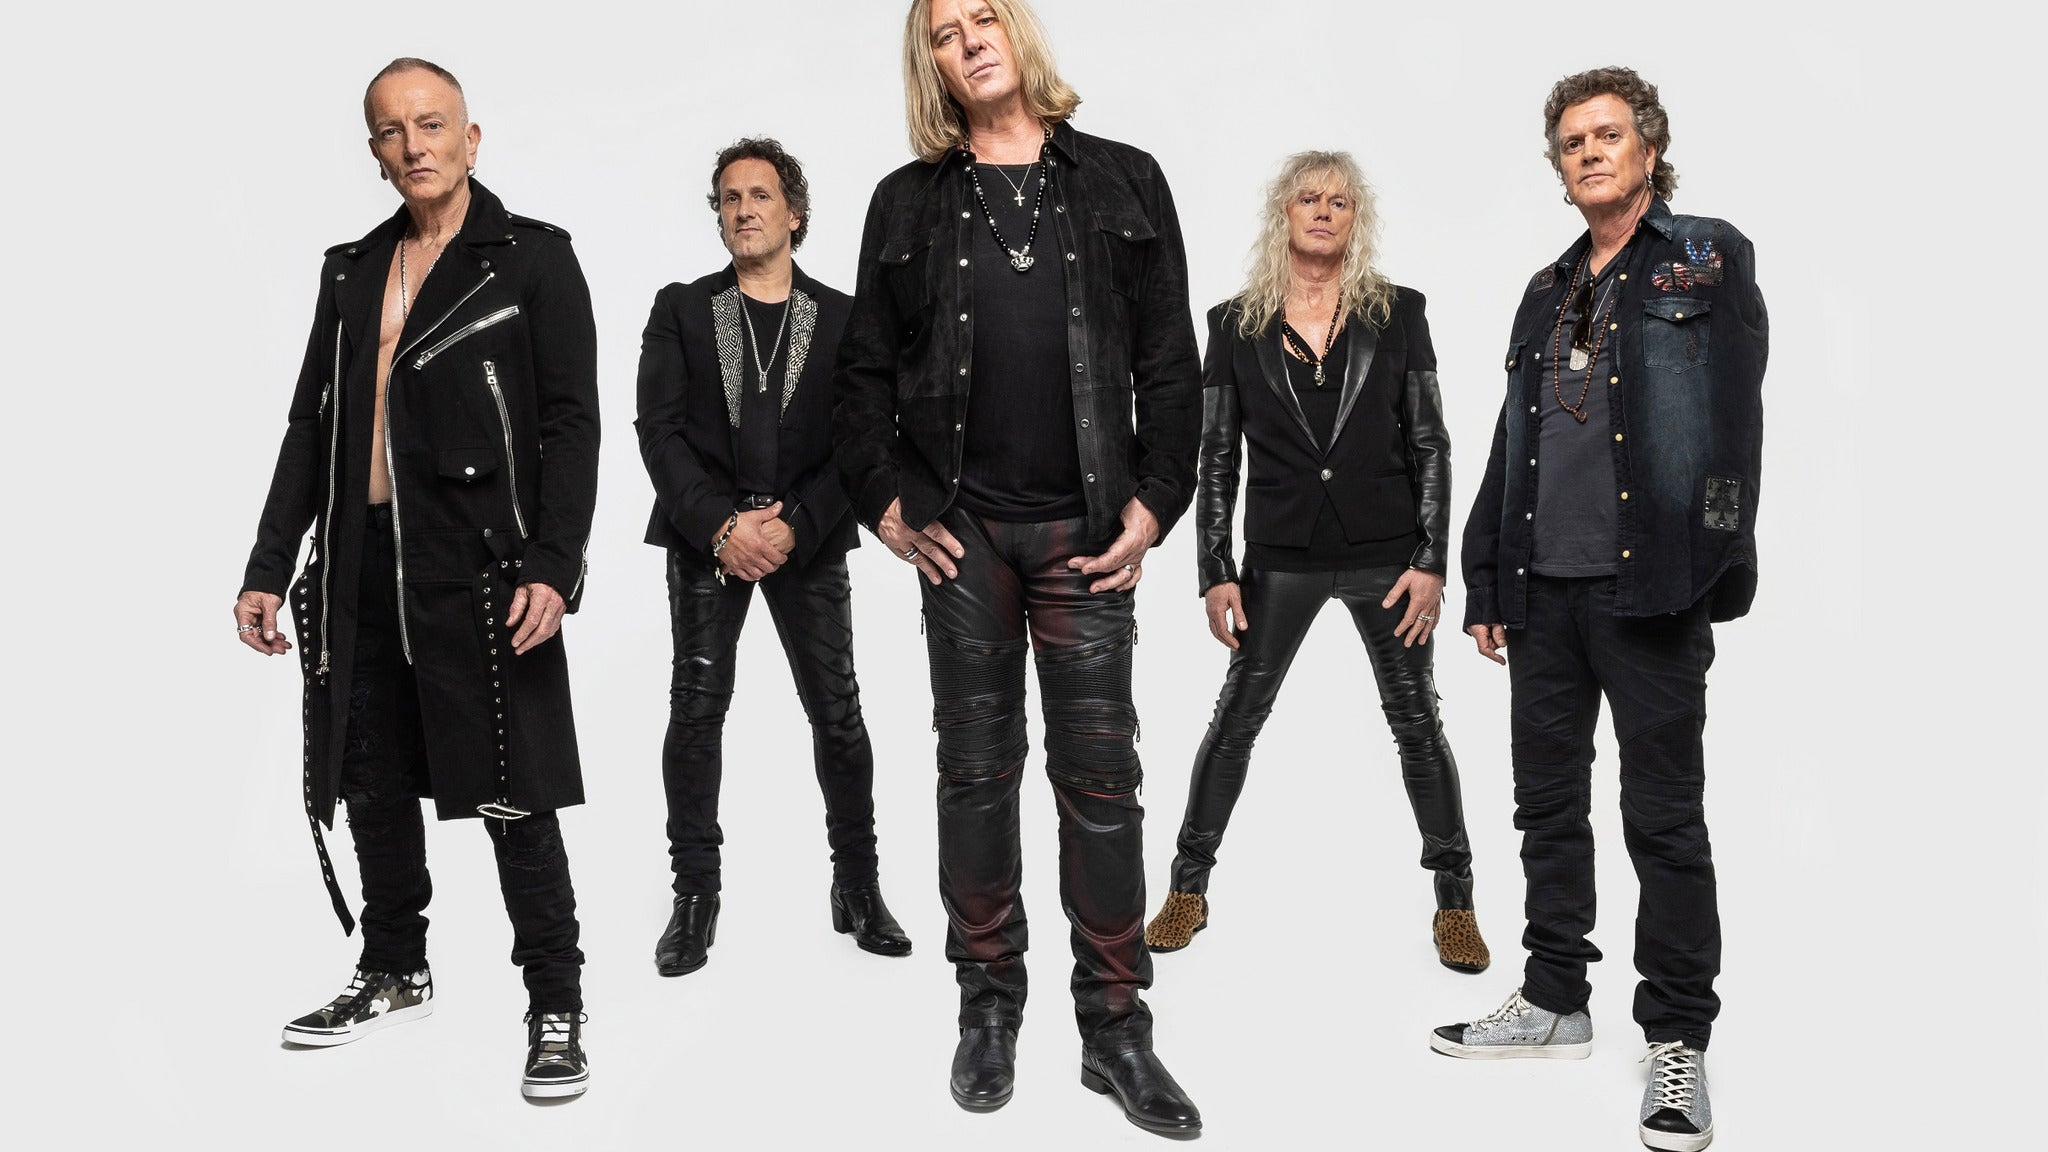 Hard Rock Hotel Casino Sacramento Grand Opening Featuring Def Leppard